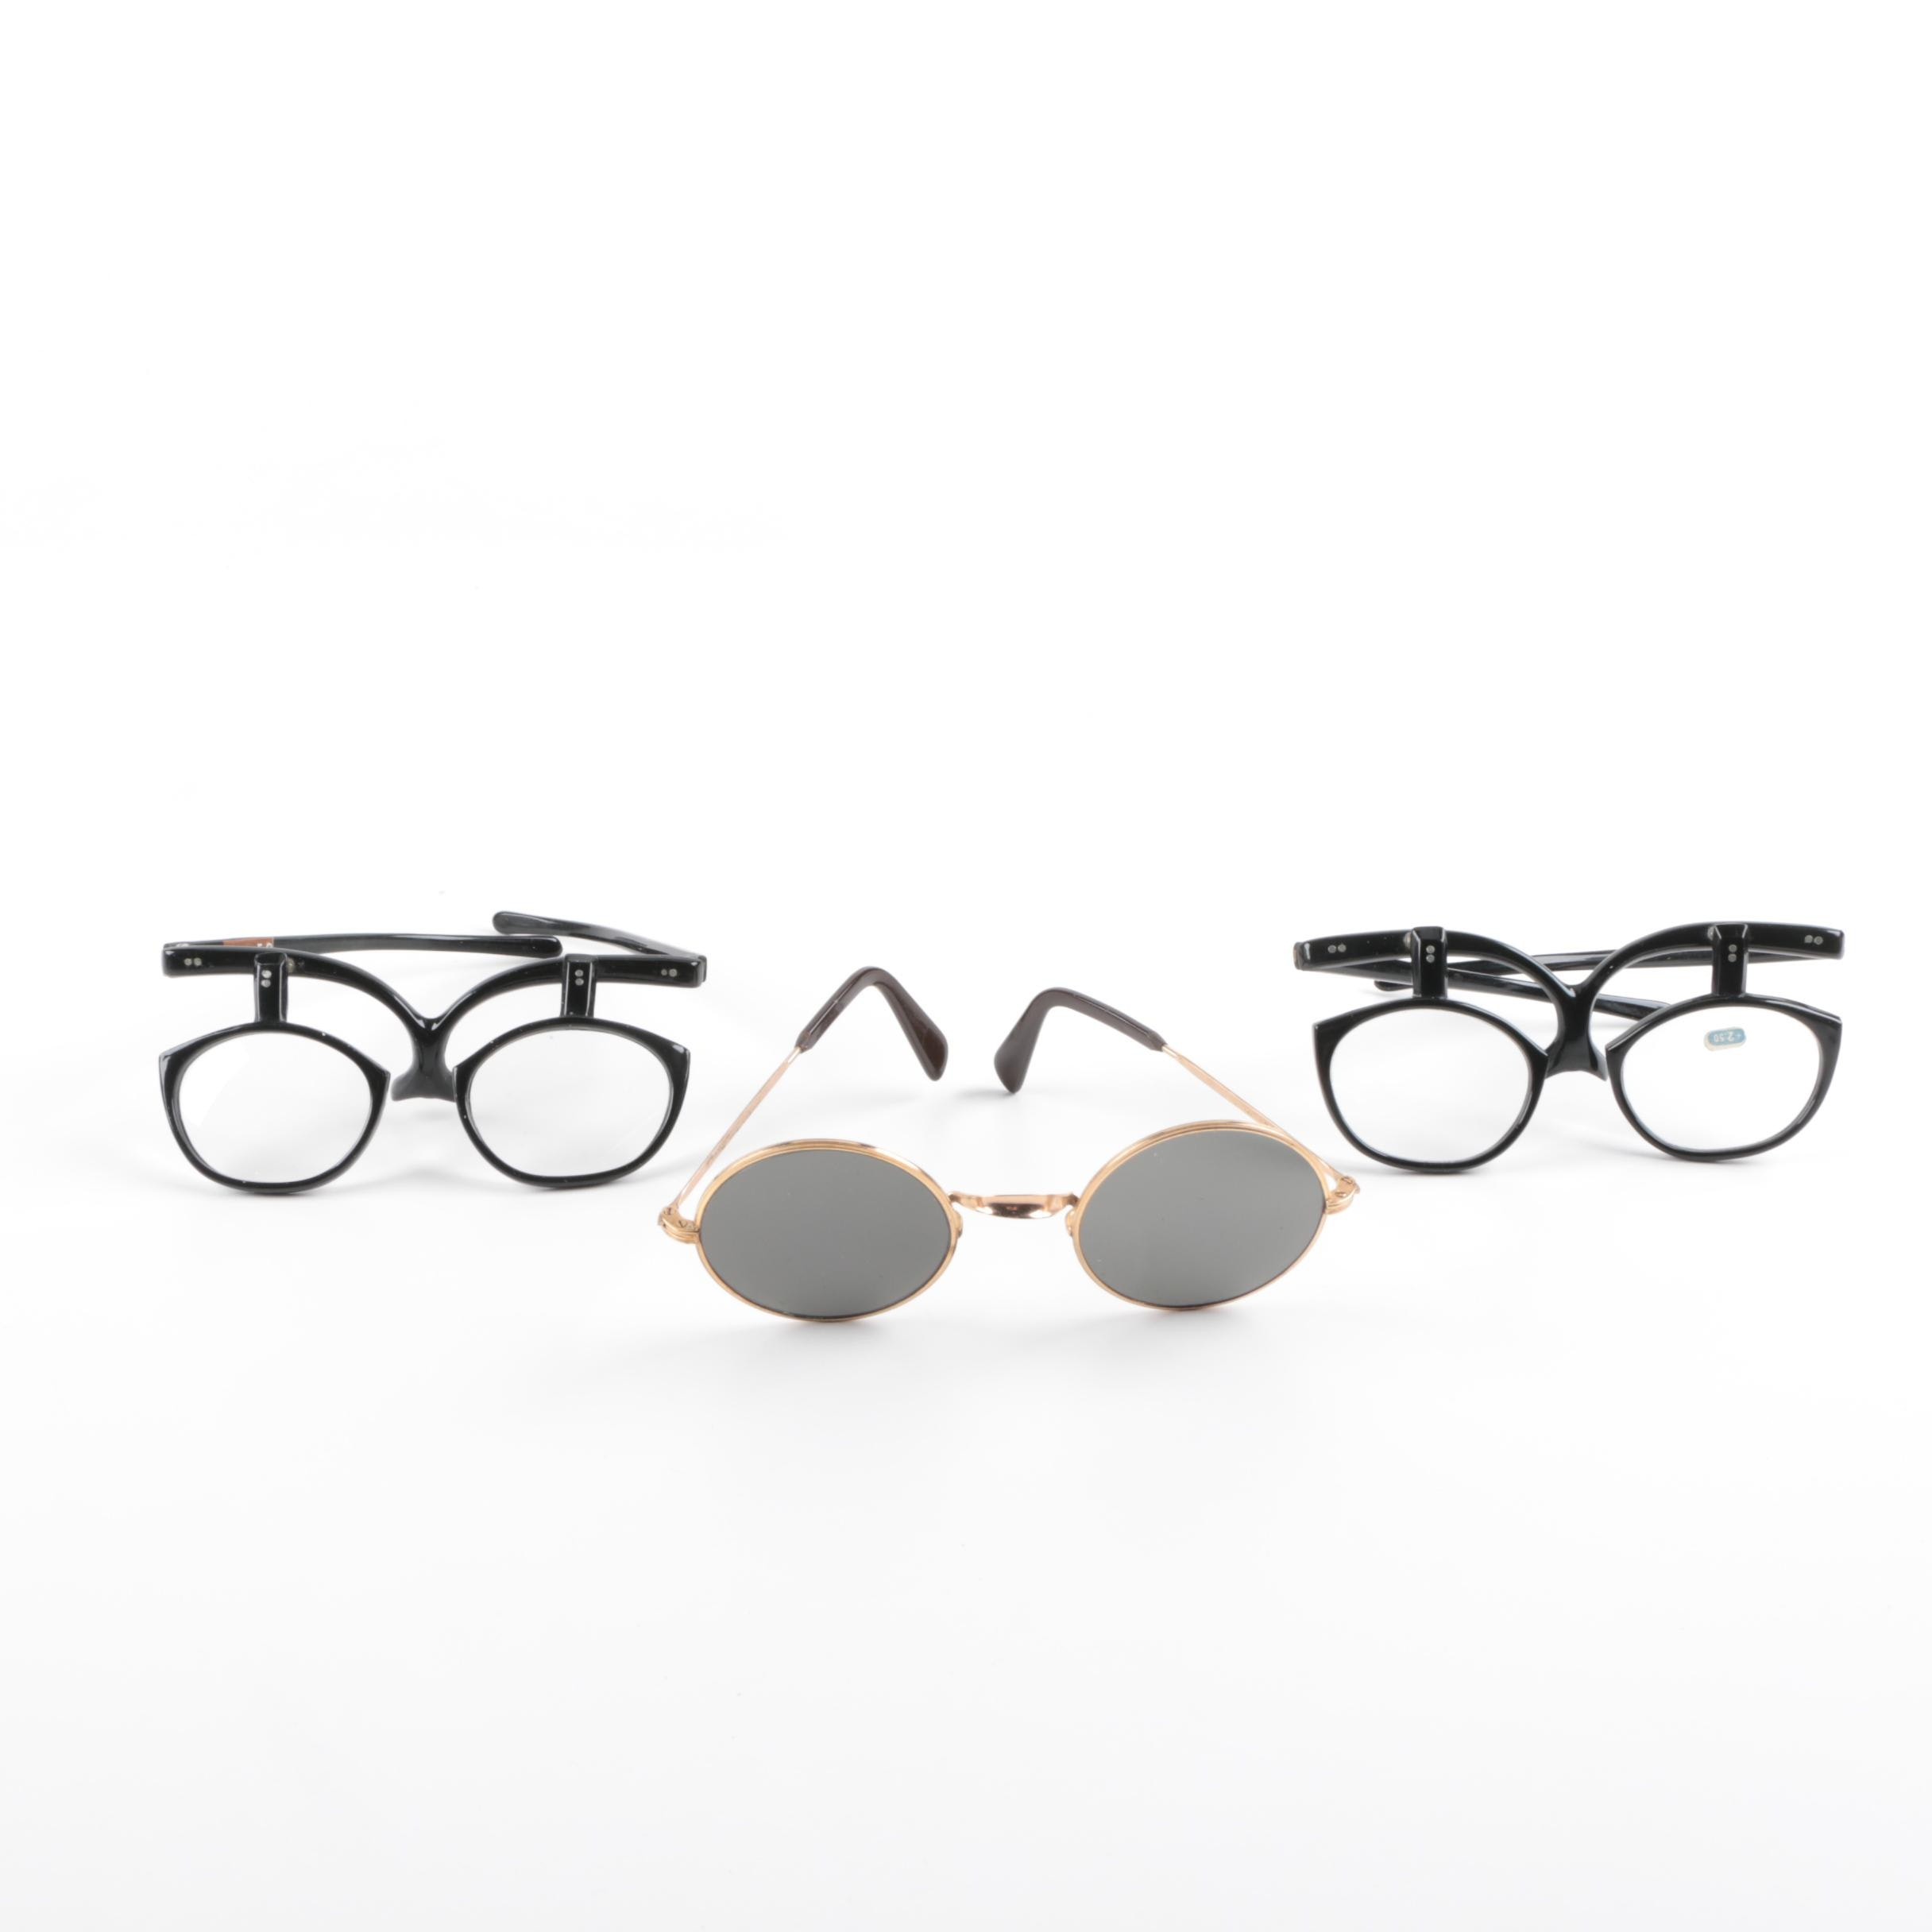 Vintage Sunglasses and Magnifying Task Glasses